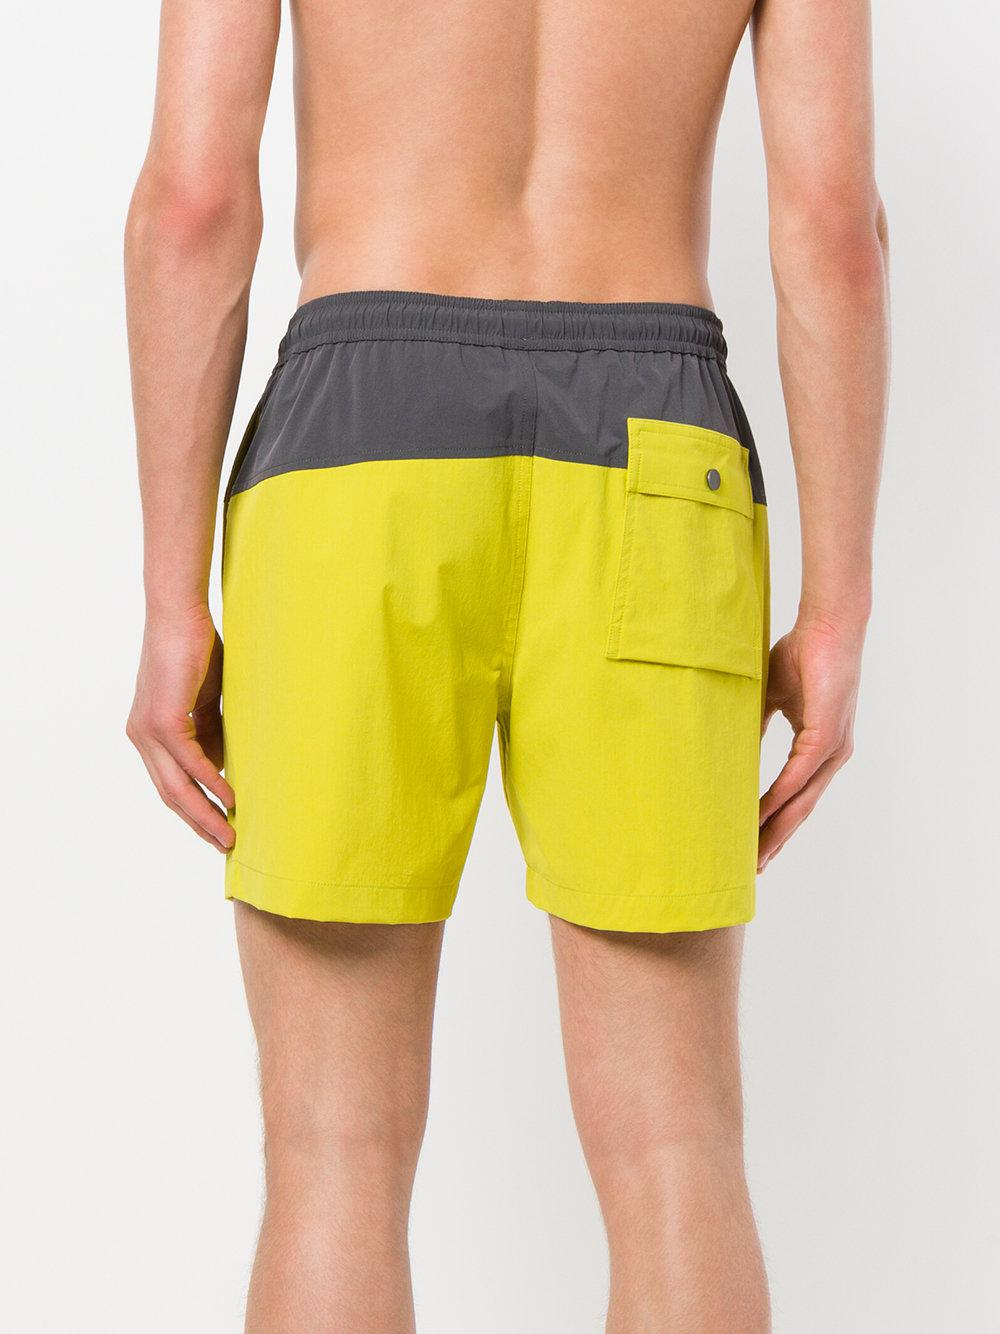 2018 Newest Cheap Online Cosmos swim shorts - Yellow & Orange Theory Outlet Really 4Xz03OyrK1